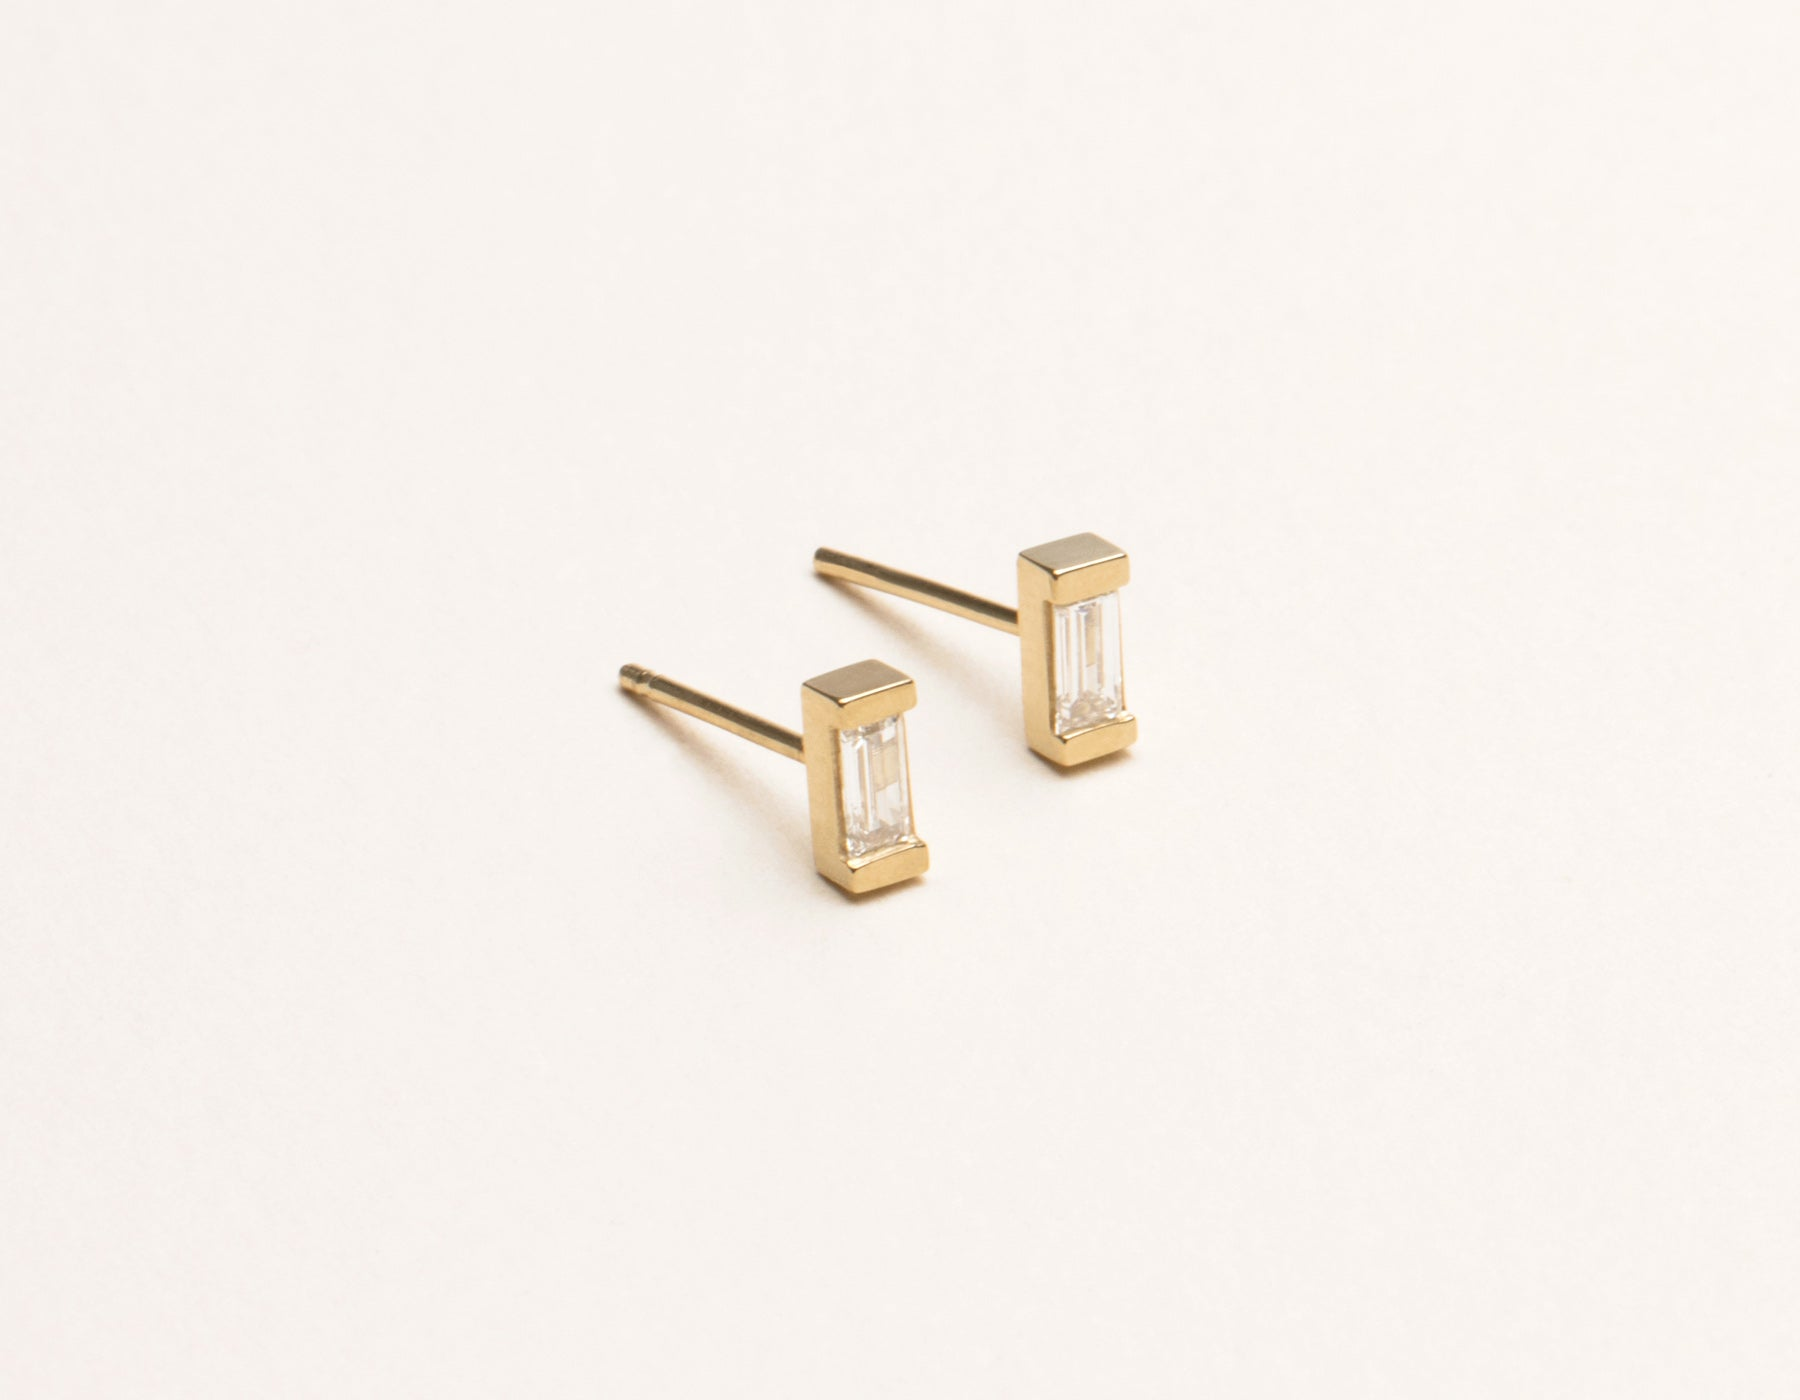 x earrings products stud wg diamond ef earring baguette diamondbaguette